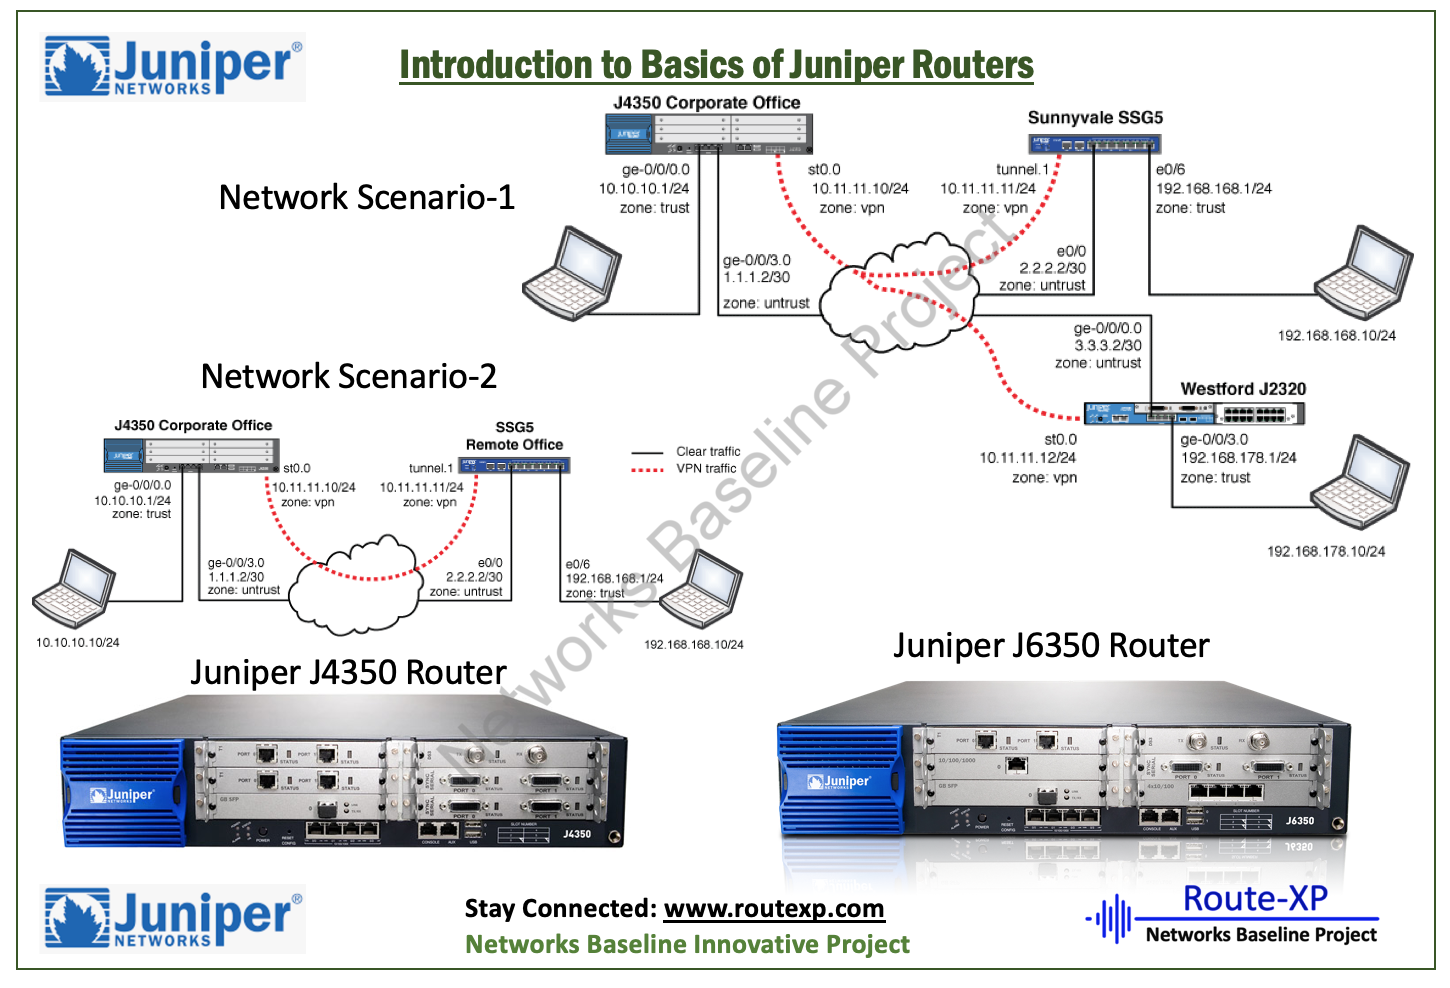 Basic Router Configuration : Juniper J2300, J4350 and J6350 routers